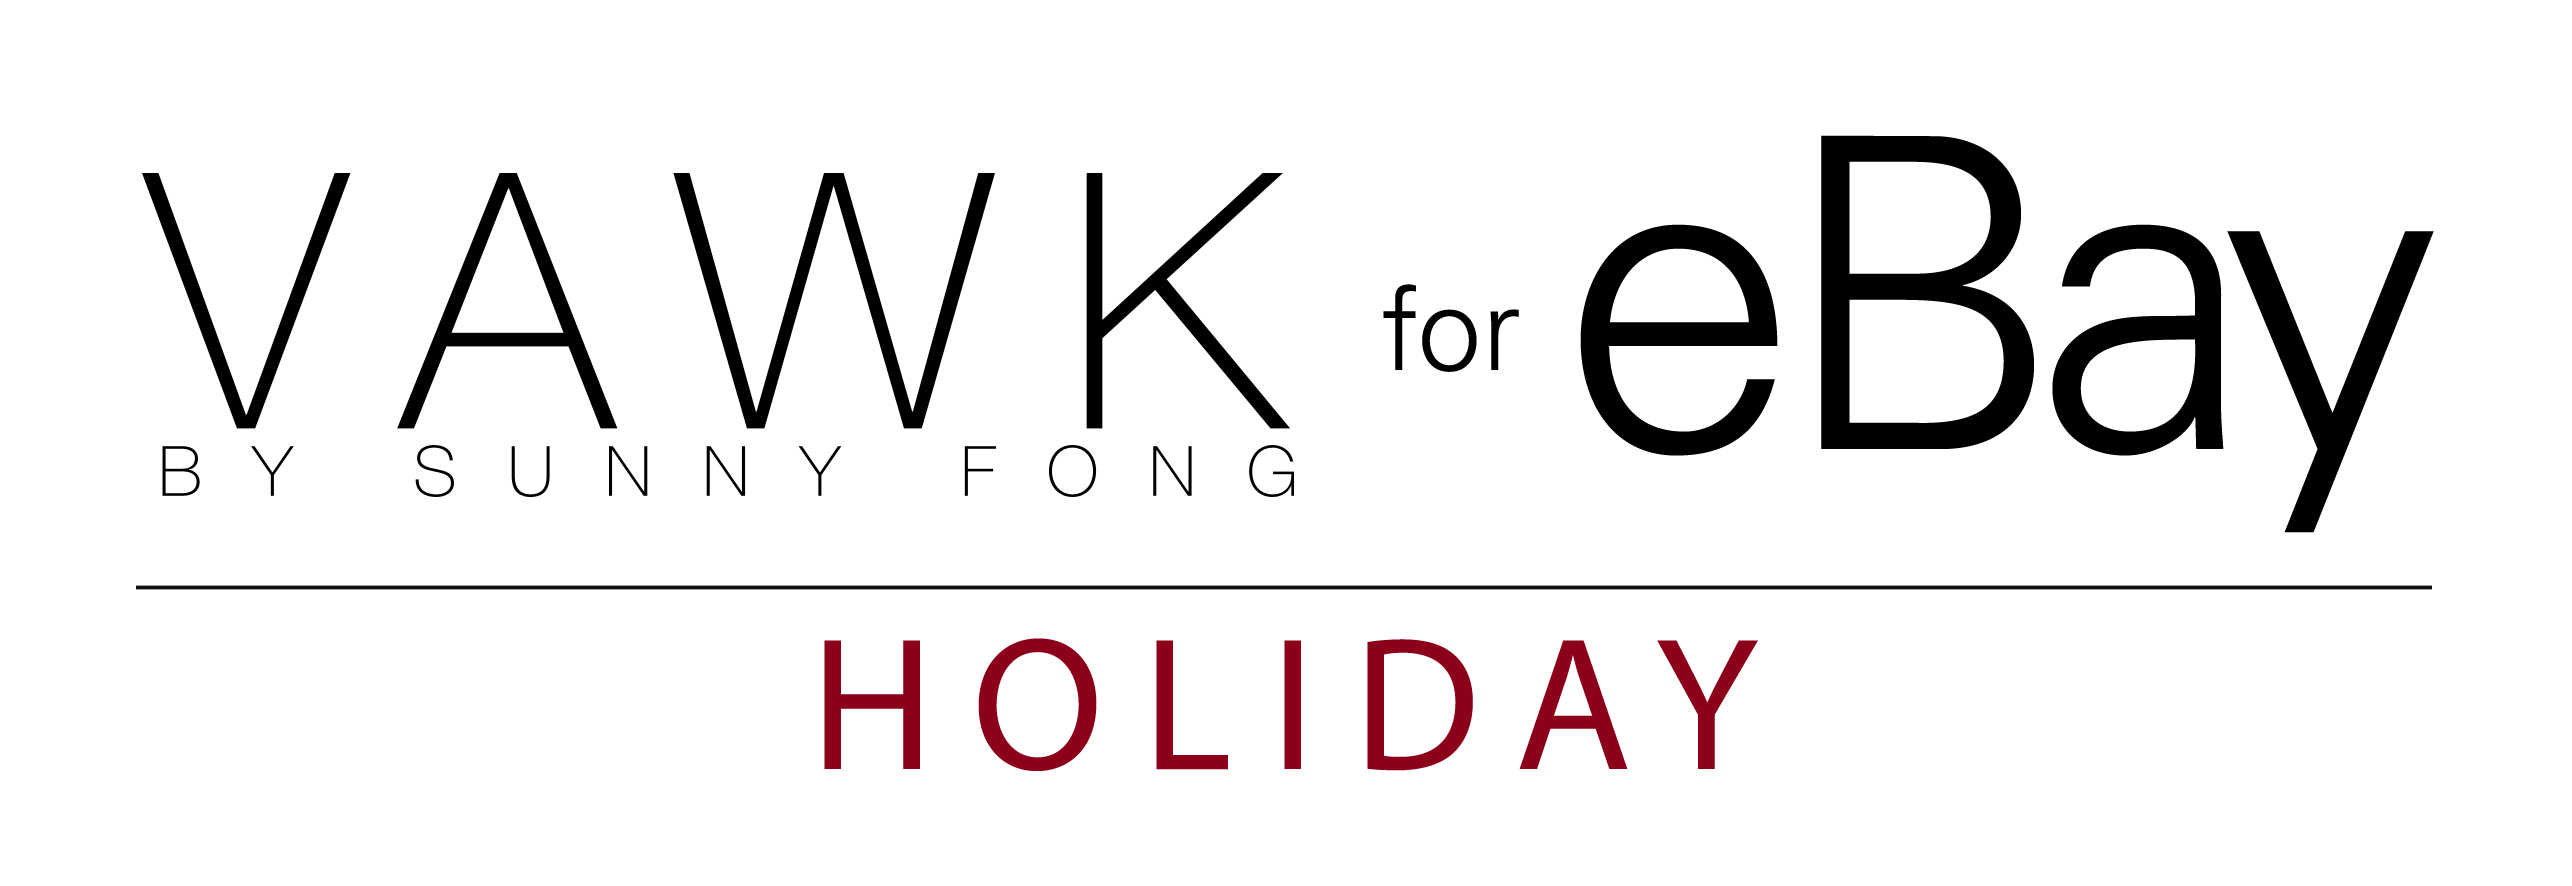 Vawk For Ebay Holiday Collection